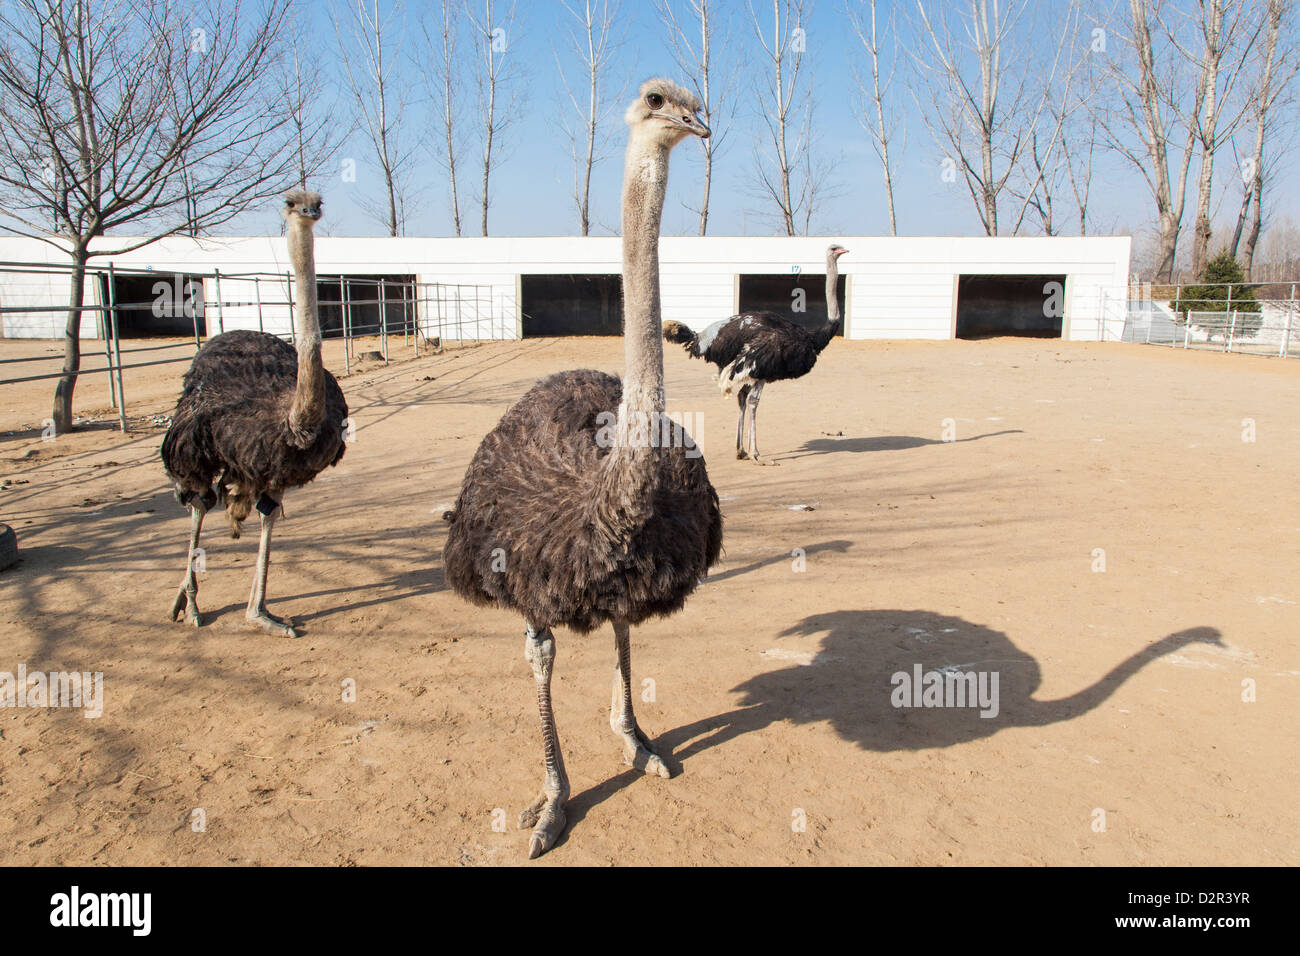 Ostrich farm near Pyongyang which supplies Ostrich meat to some of Pyongyang's restaurants, North Korea - Stock Image